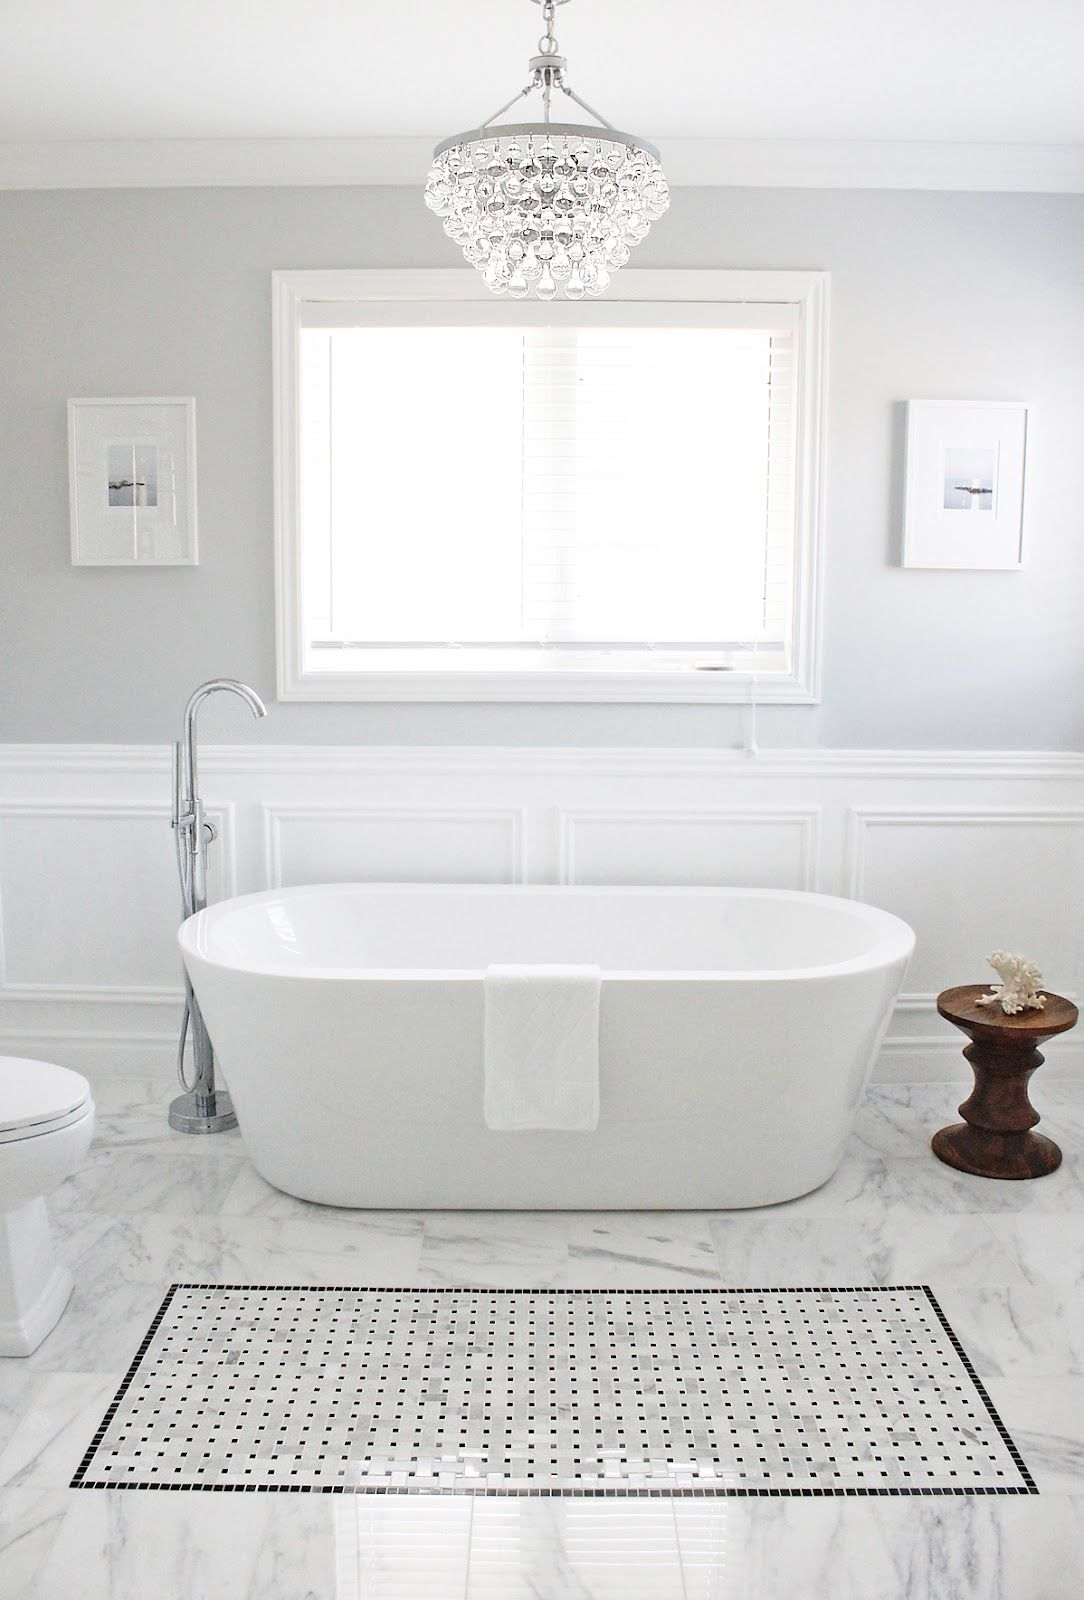 Valspar Polar Star Light Gray Bathroom Paint Color is creative insp ...